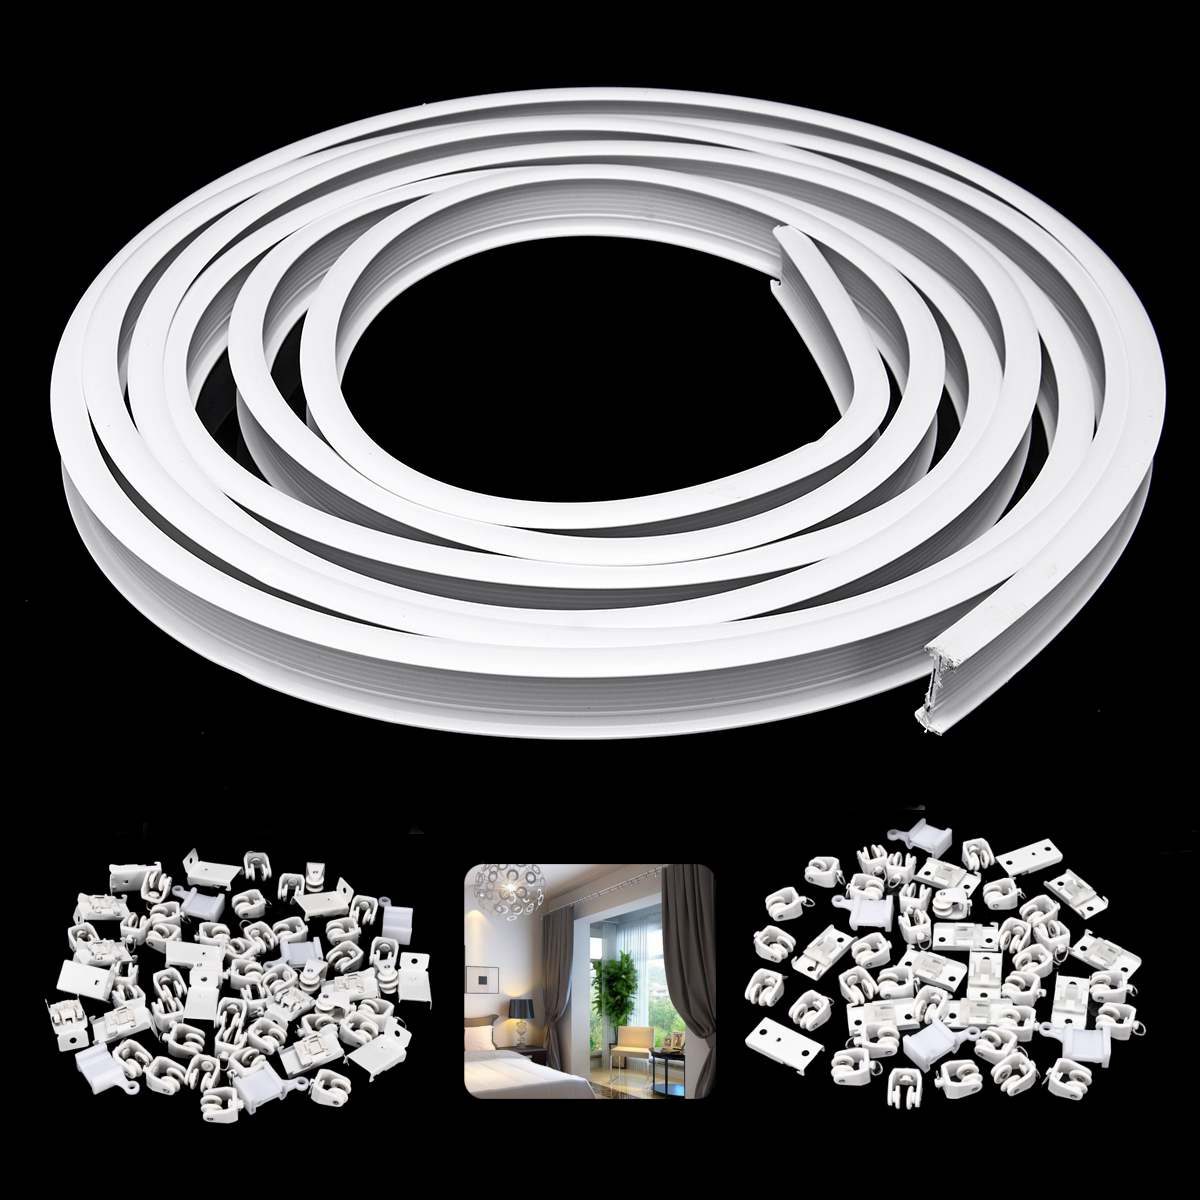 Ceiling Mounted Flexible Curtain Track: 1m Flexible Ceiling Mounted Curtain Track Rail Straight